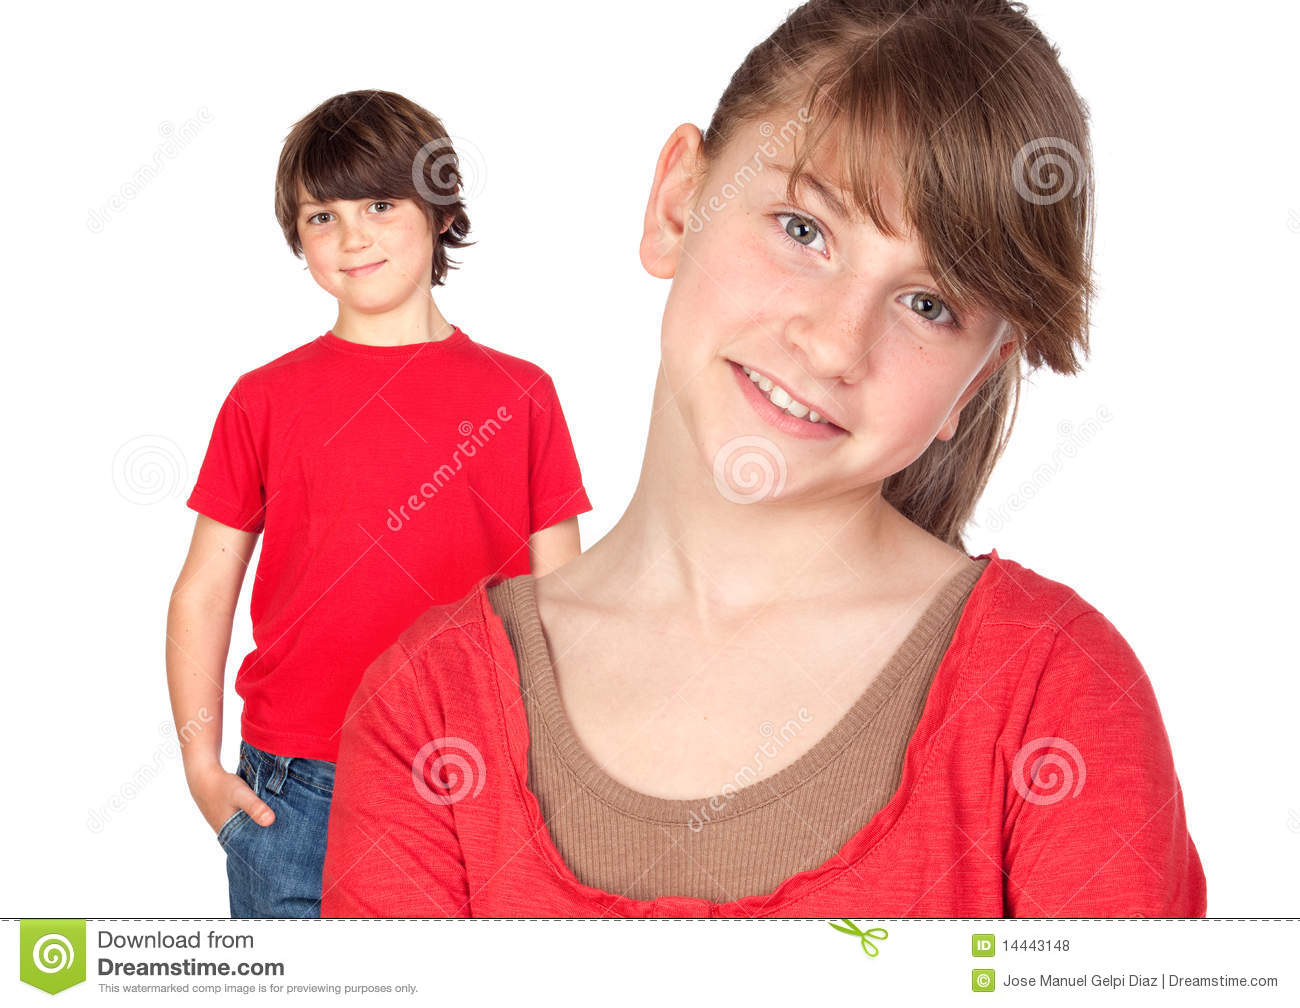 Royalty Free Stock Photos: Adorable preteen girl and little gir in red